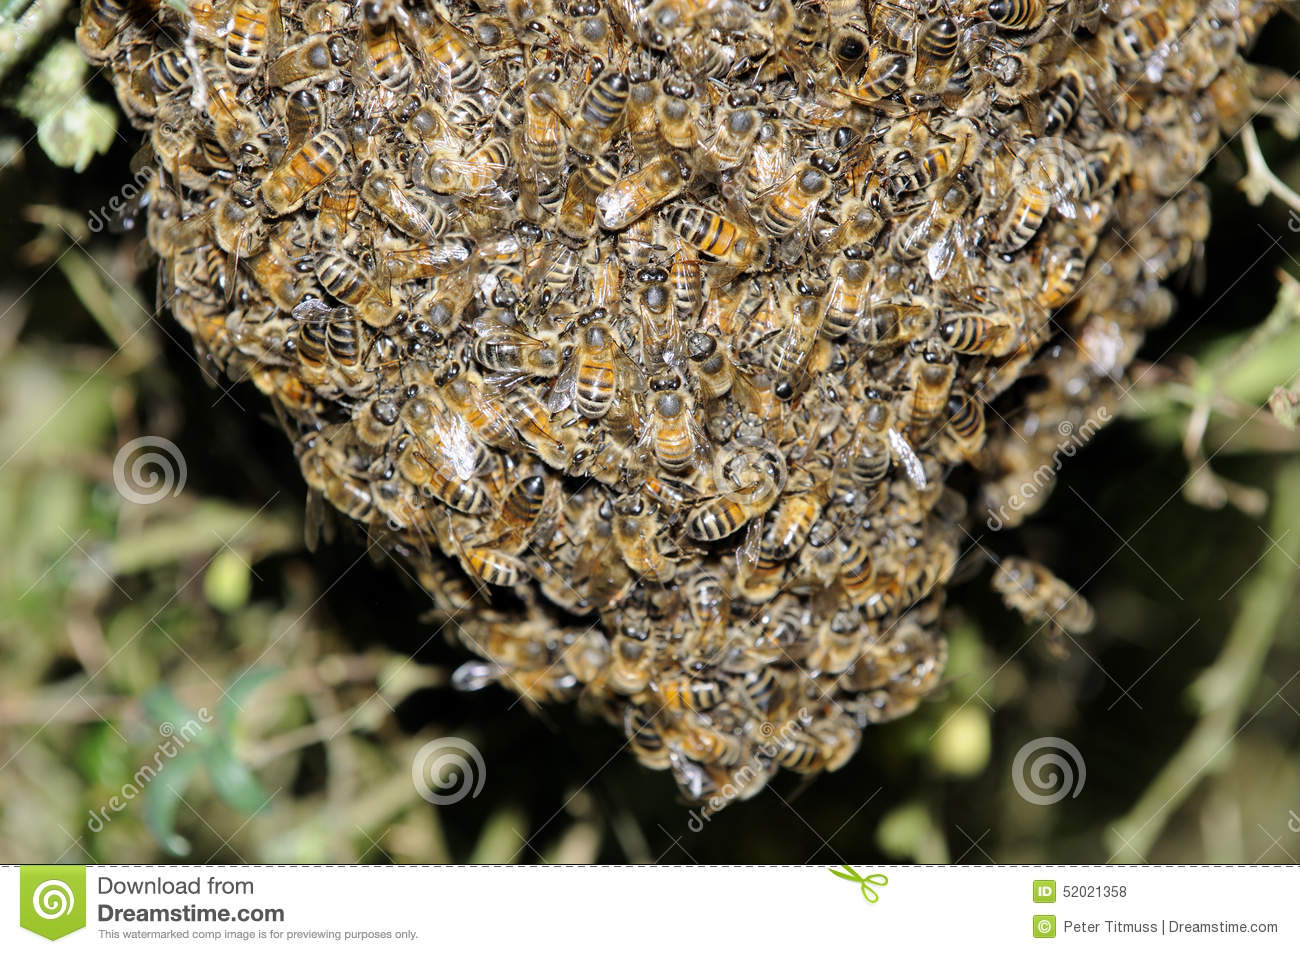 Swarm Of Bees Hanging In A Tree Stock Photo - Image of honeybee ...